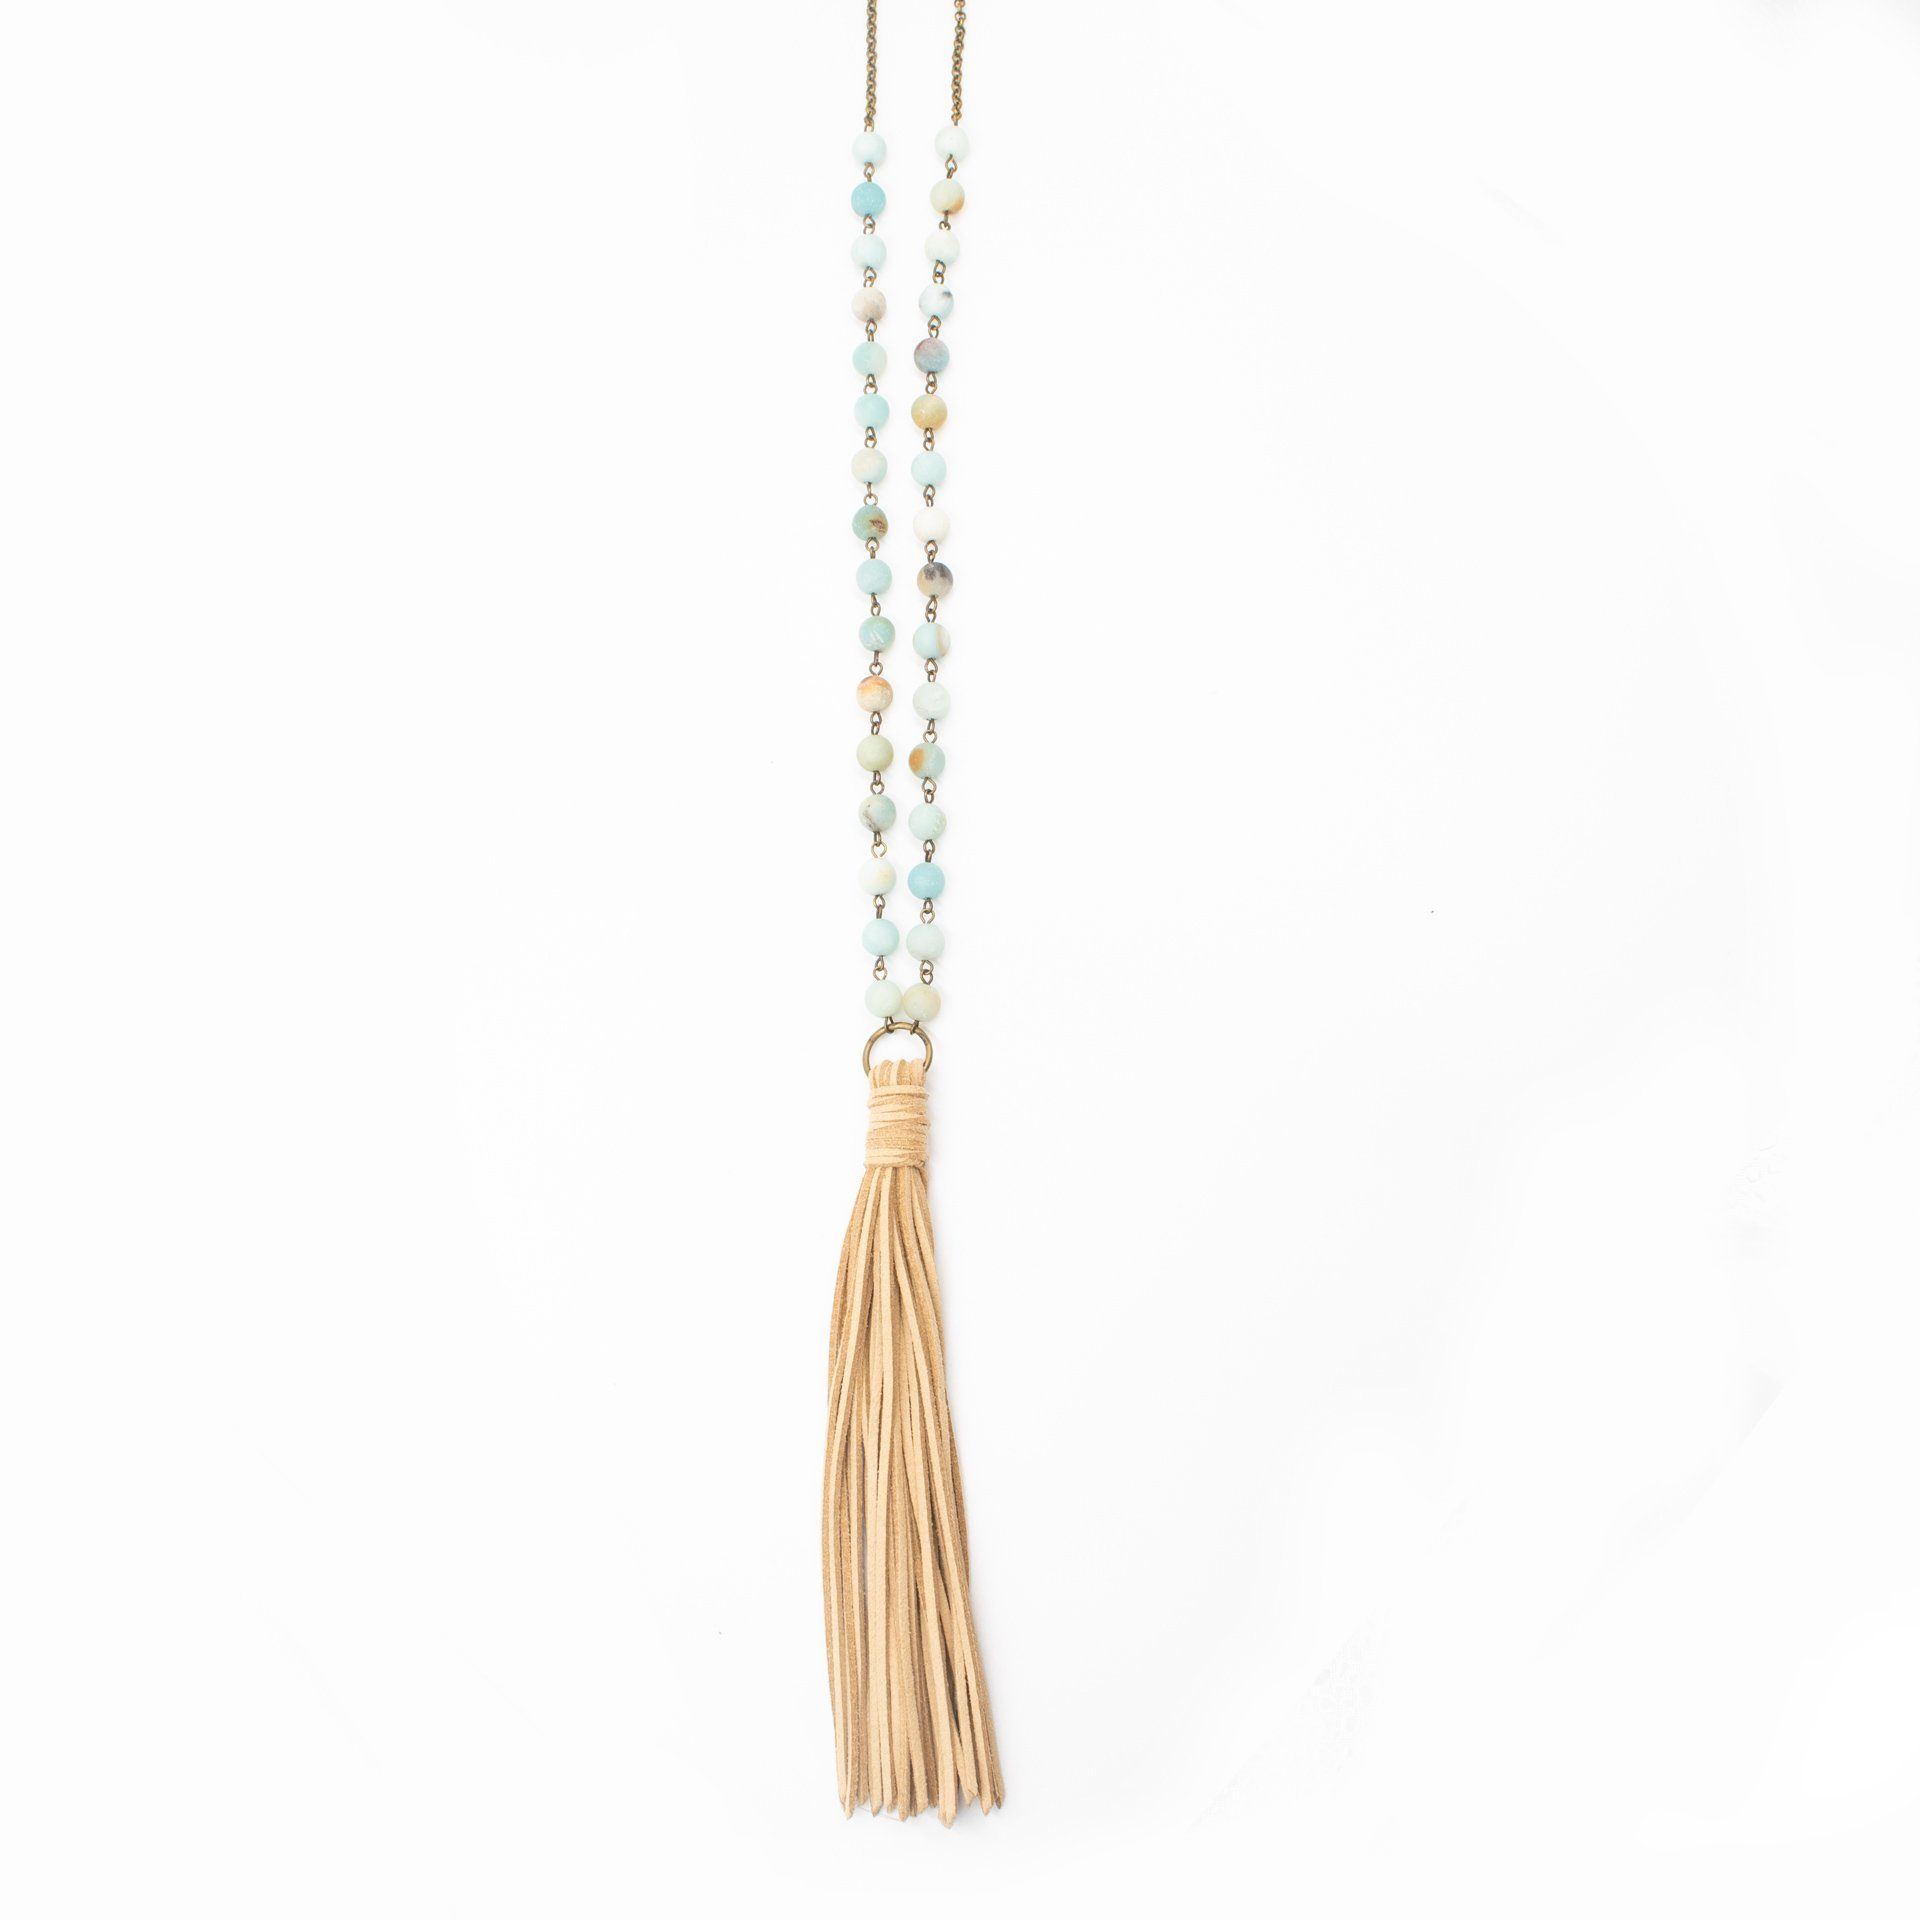 Long Beaded Tan Suede Tassel Necklace - Arlo and Arrows